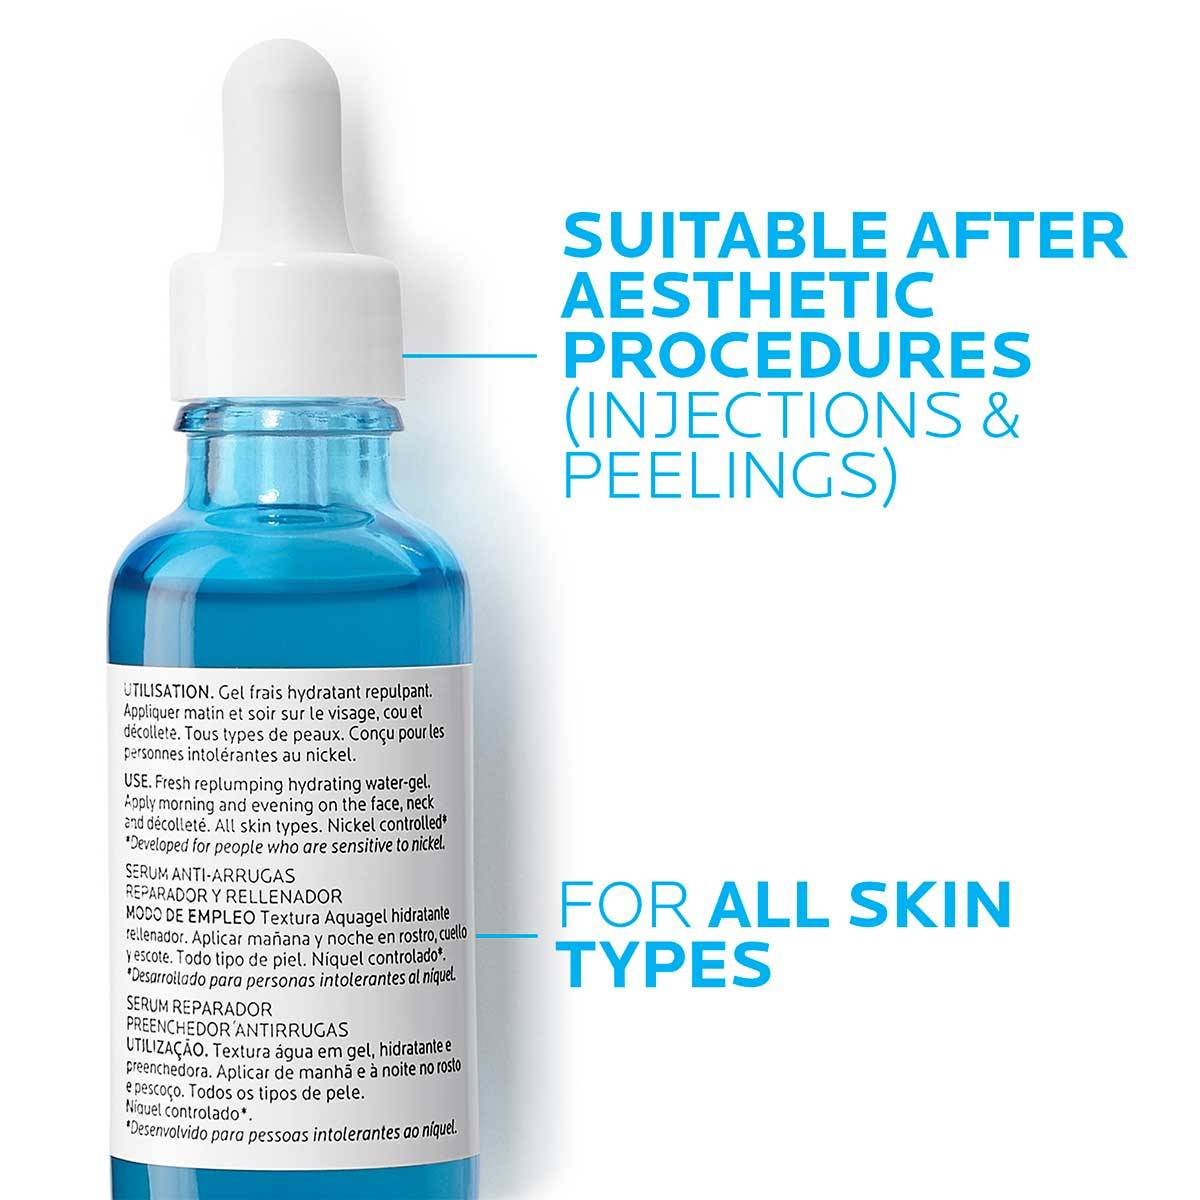 Hyalu B5 Serum 30ml Repairing Replumping